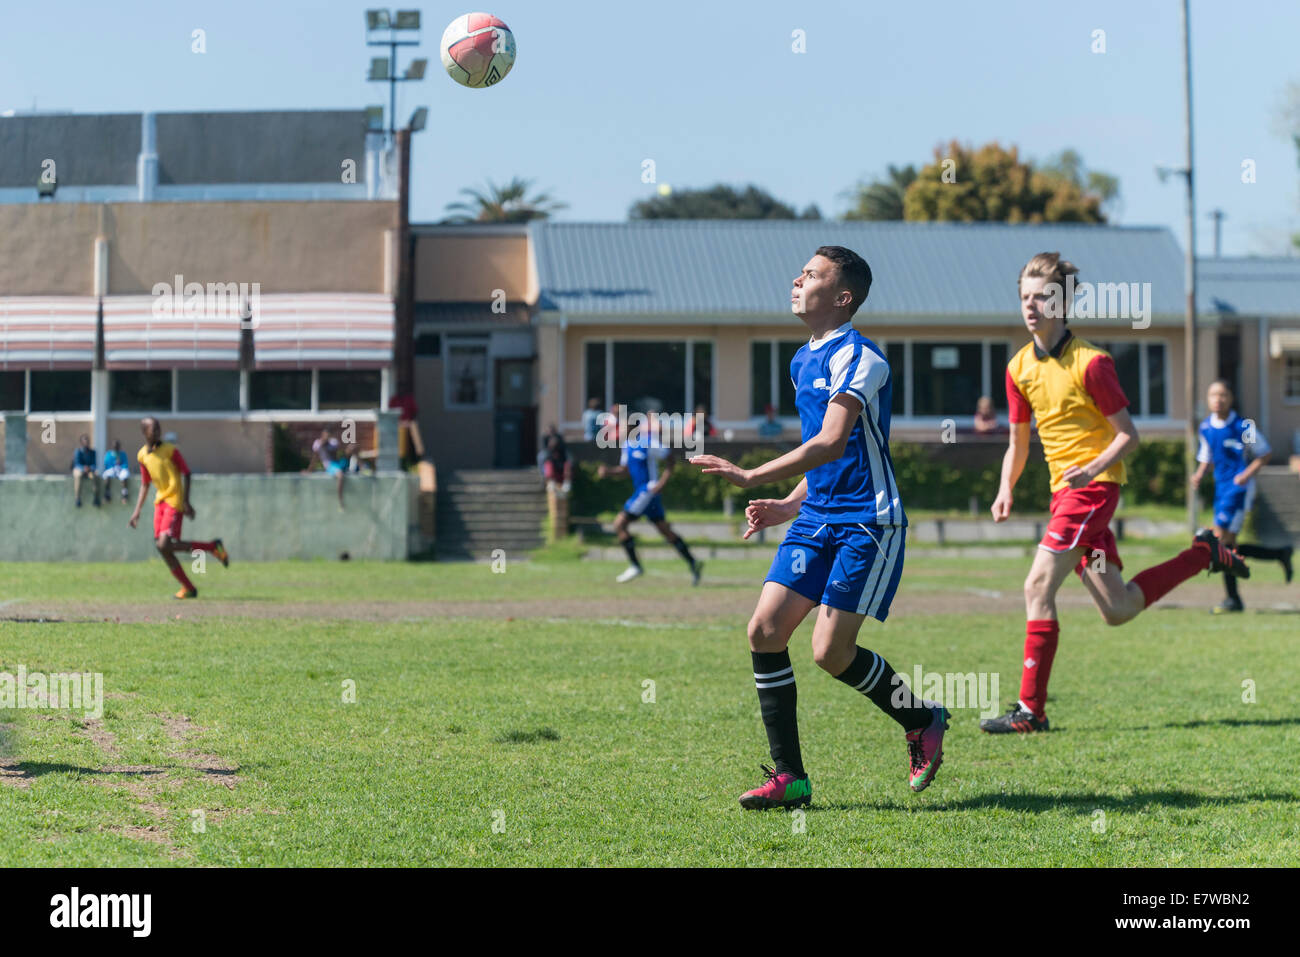 Young football player looking at the flying ball, Cape Town, South Africa - Stock Image